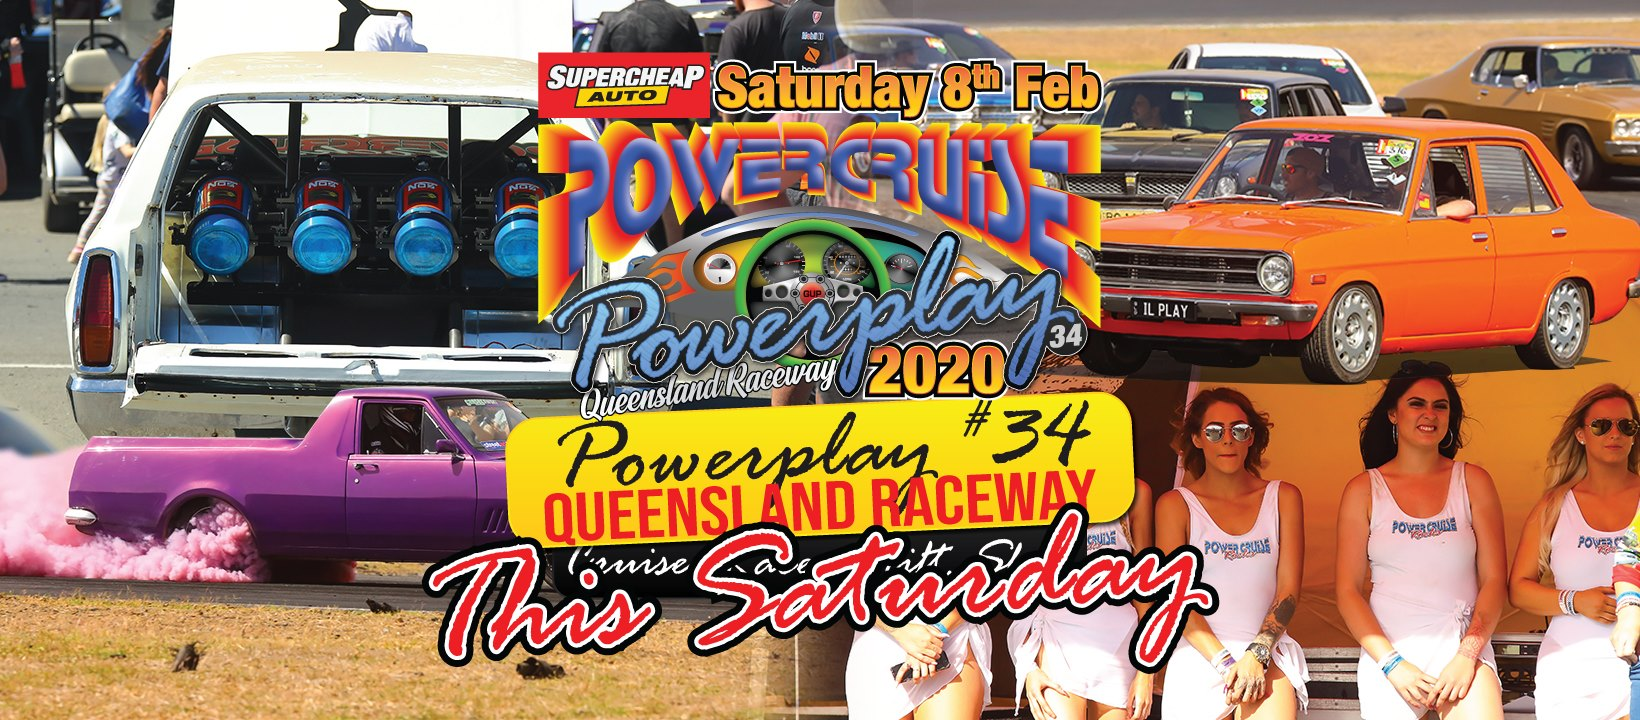 Powerplay Queensland Raceway – Kicking off the 2020 Calendar